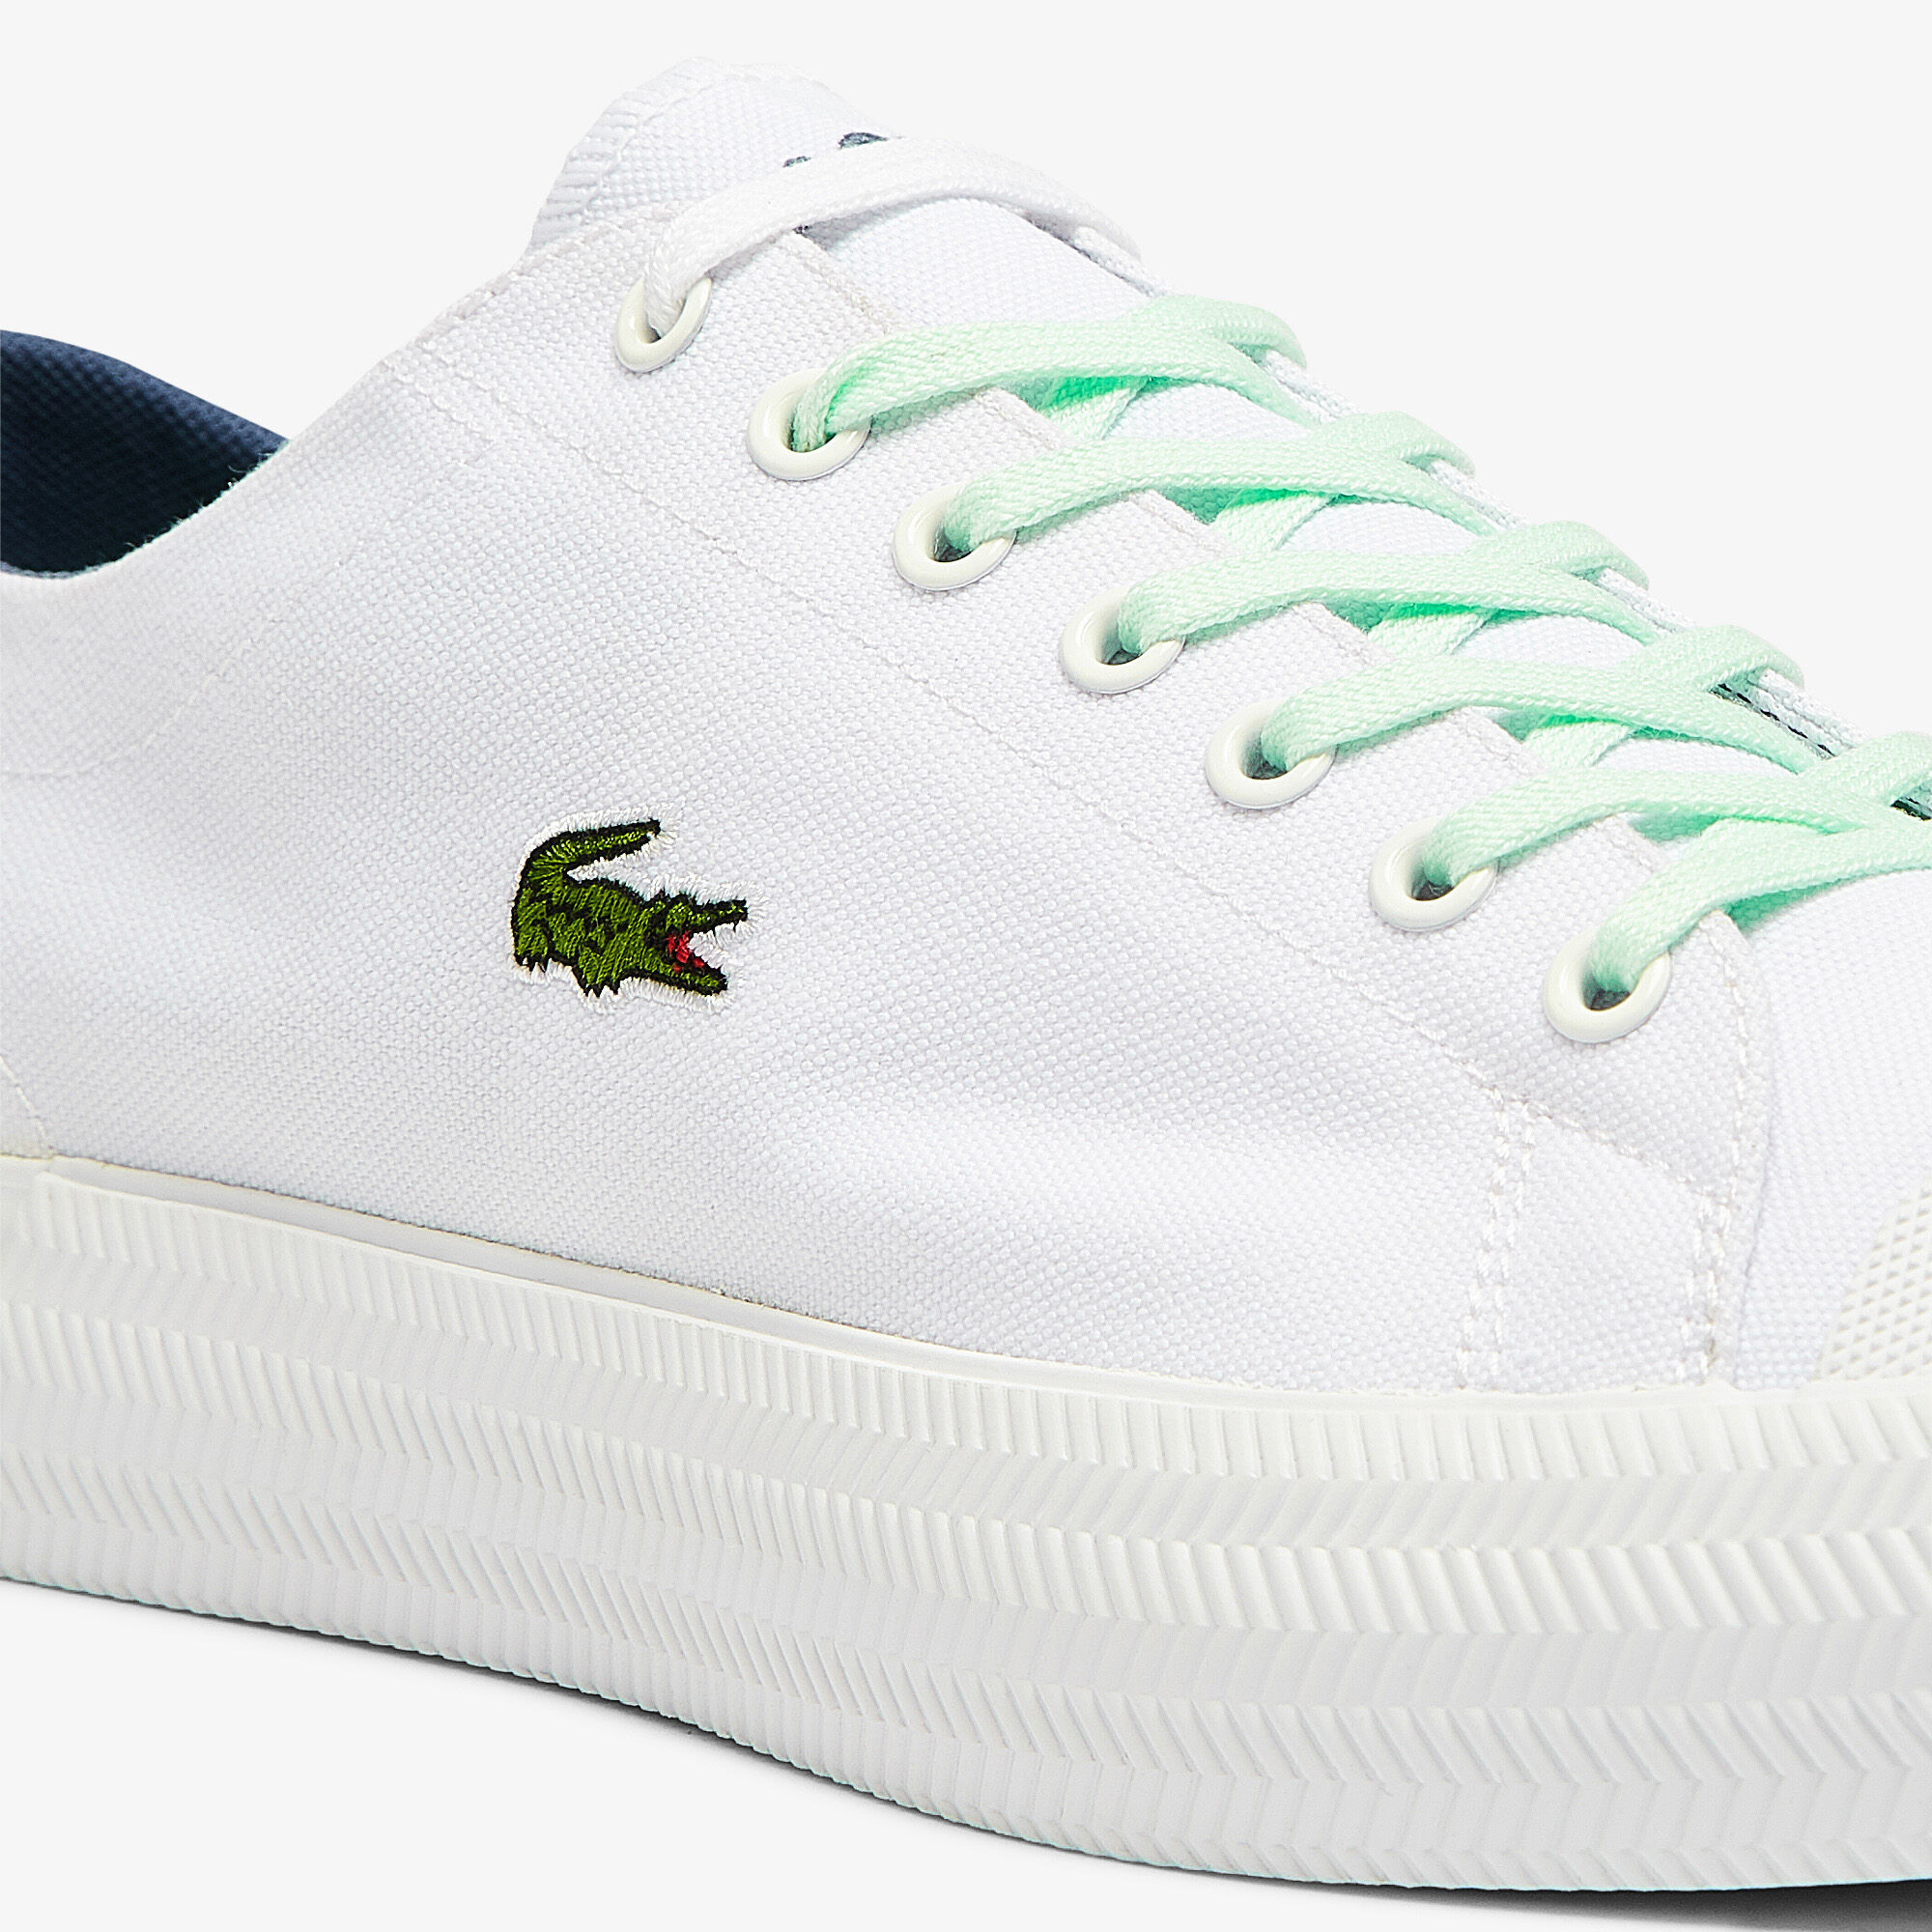 Men's Gripshot Canvas and Leather Plimsolls